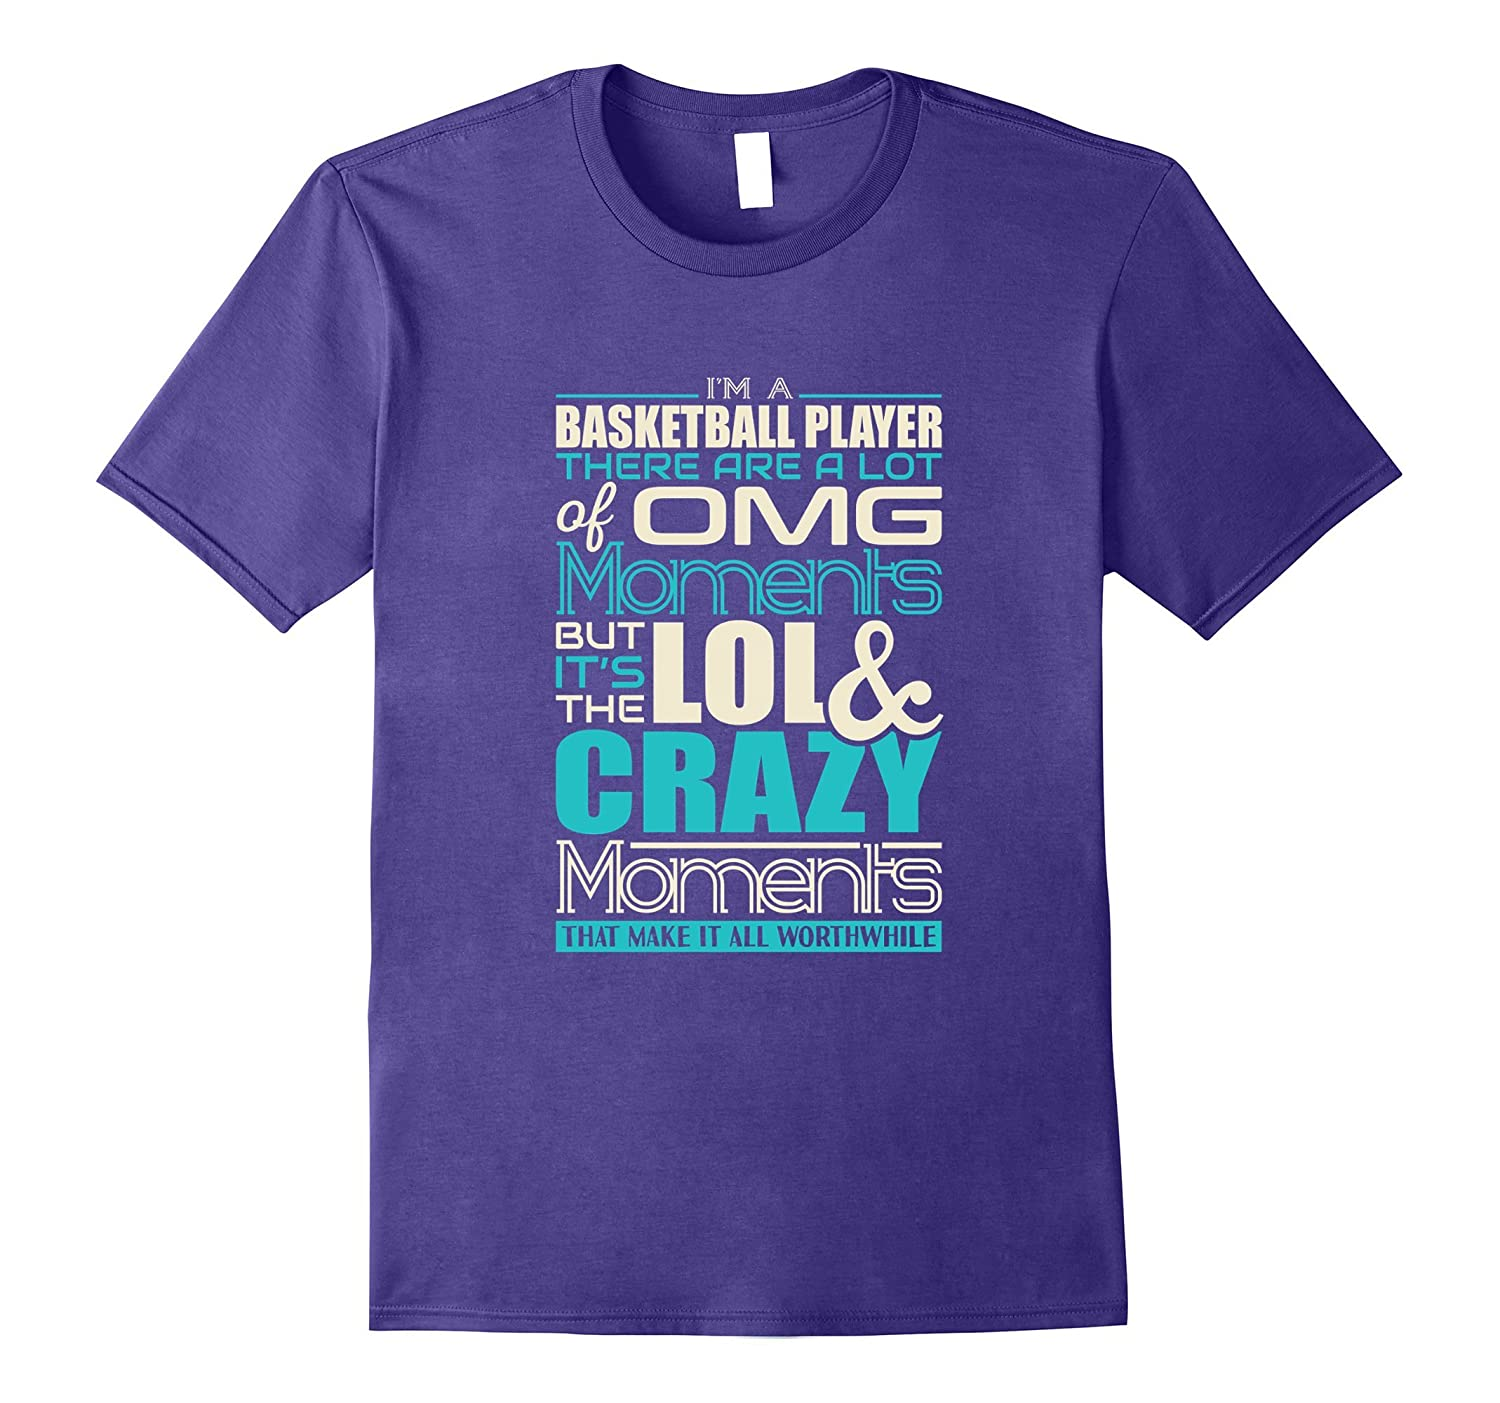 Im a Basketball Player Crazy Moments Worth it T-Shirt-TJ